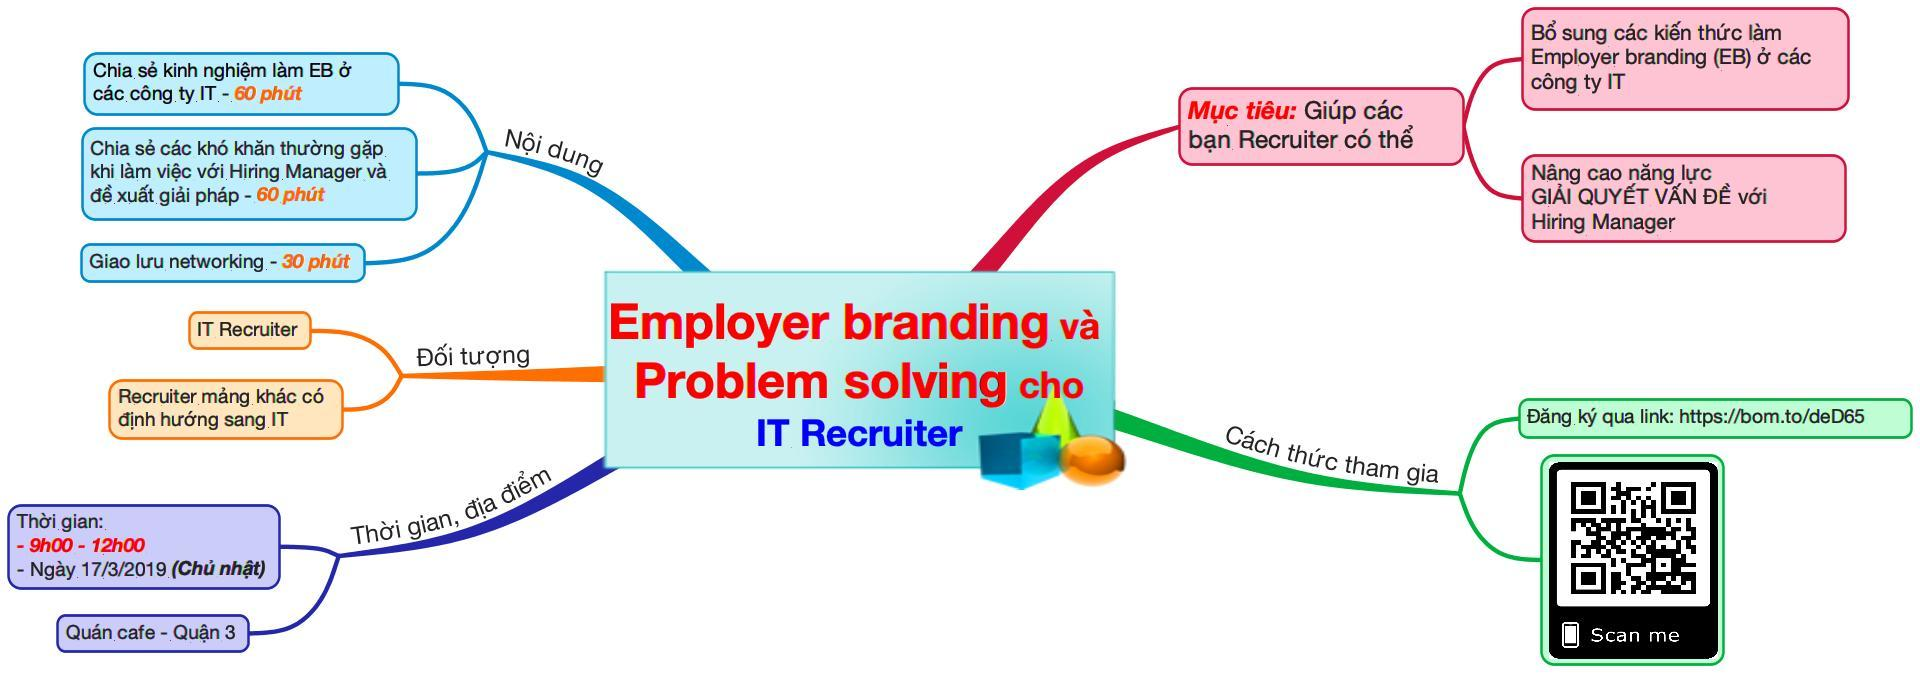 Cafe Sharing 05: Employer Branding & Problem Solving cho IT Recruiter